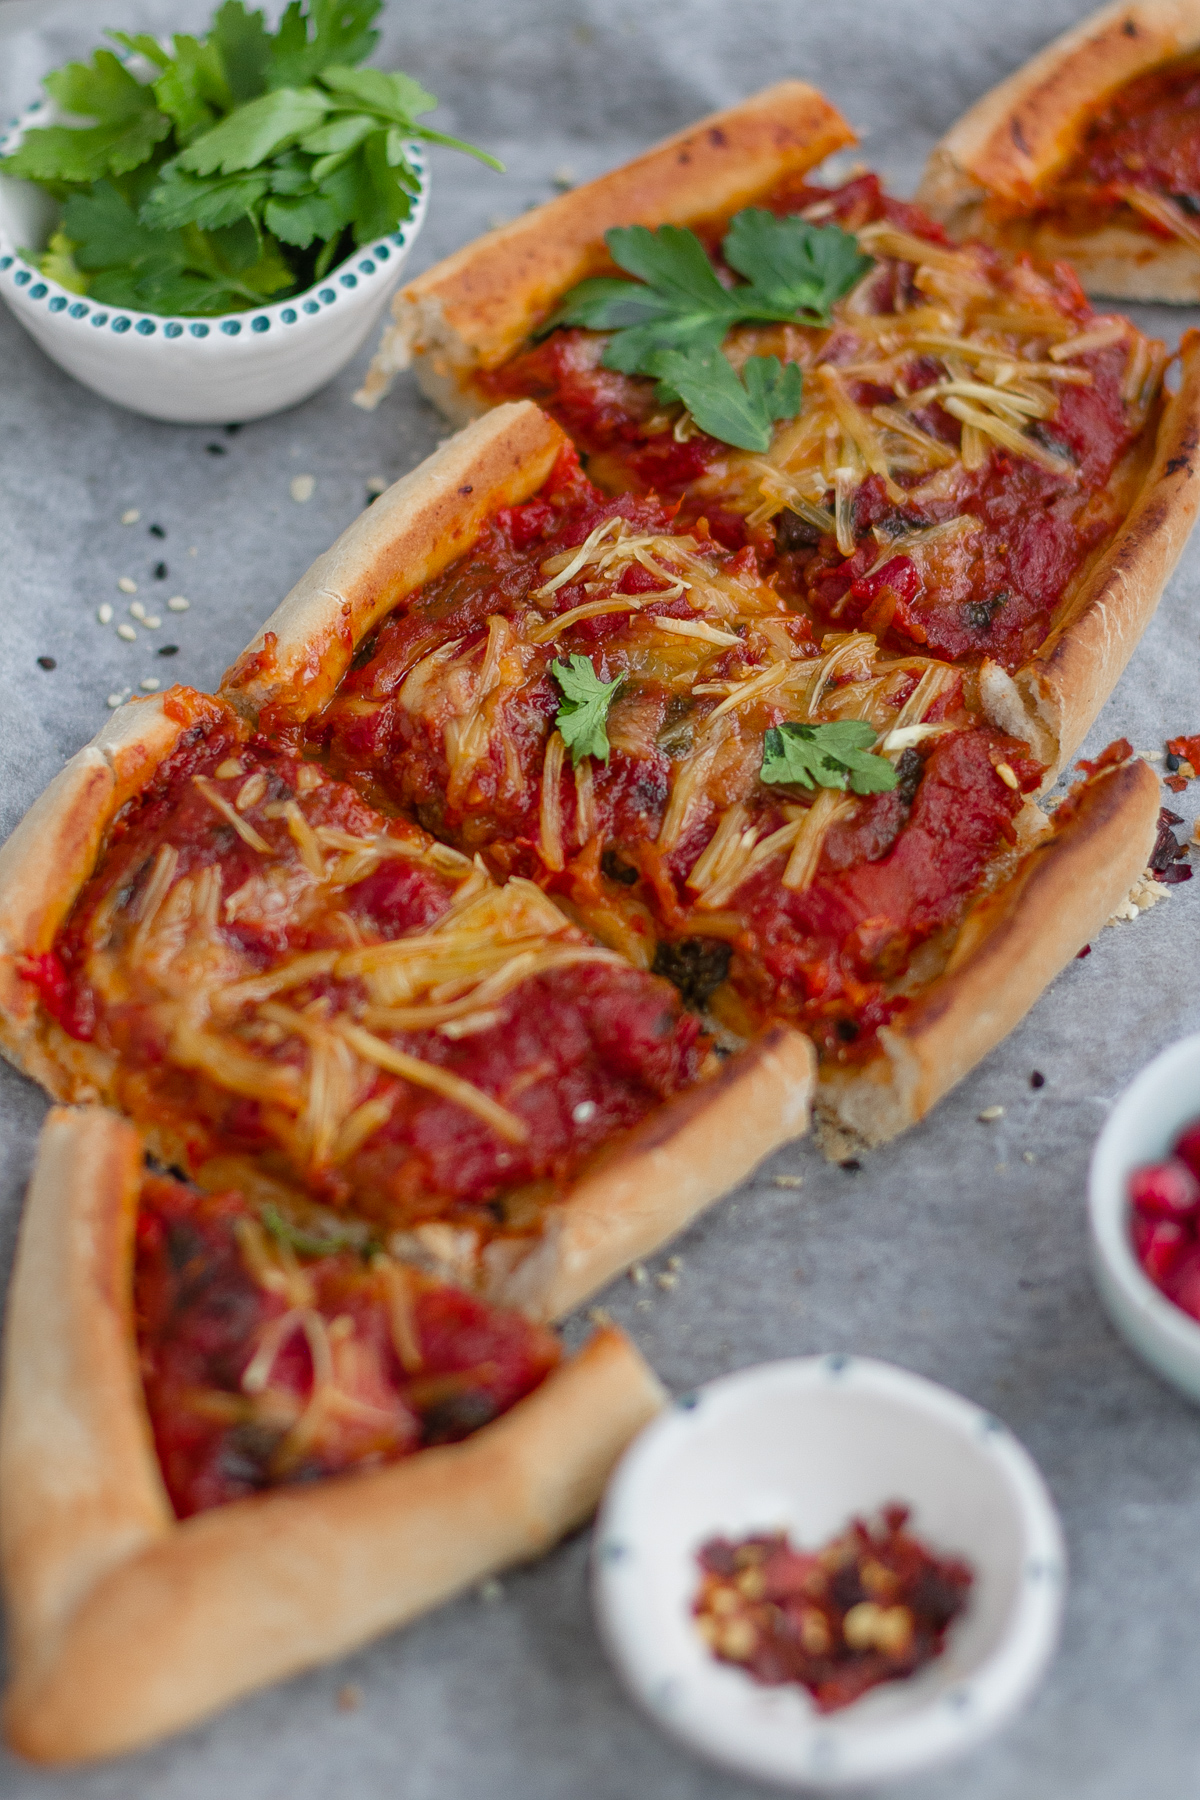 Spiced aubergine, tomato and red pepper vegan sliced pide (turkish flat bread) with pomegranate, parsley and chilli flakes